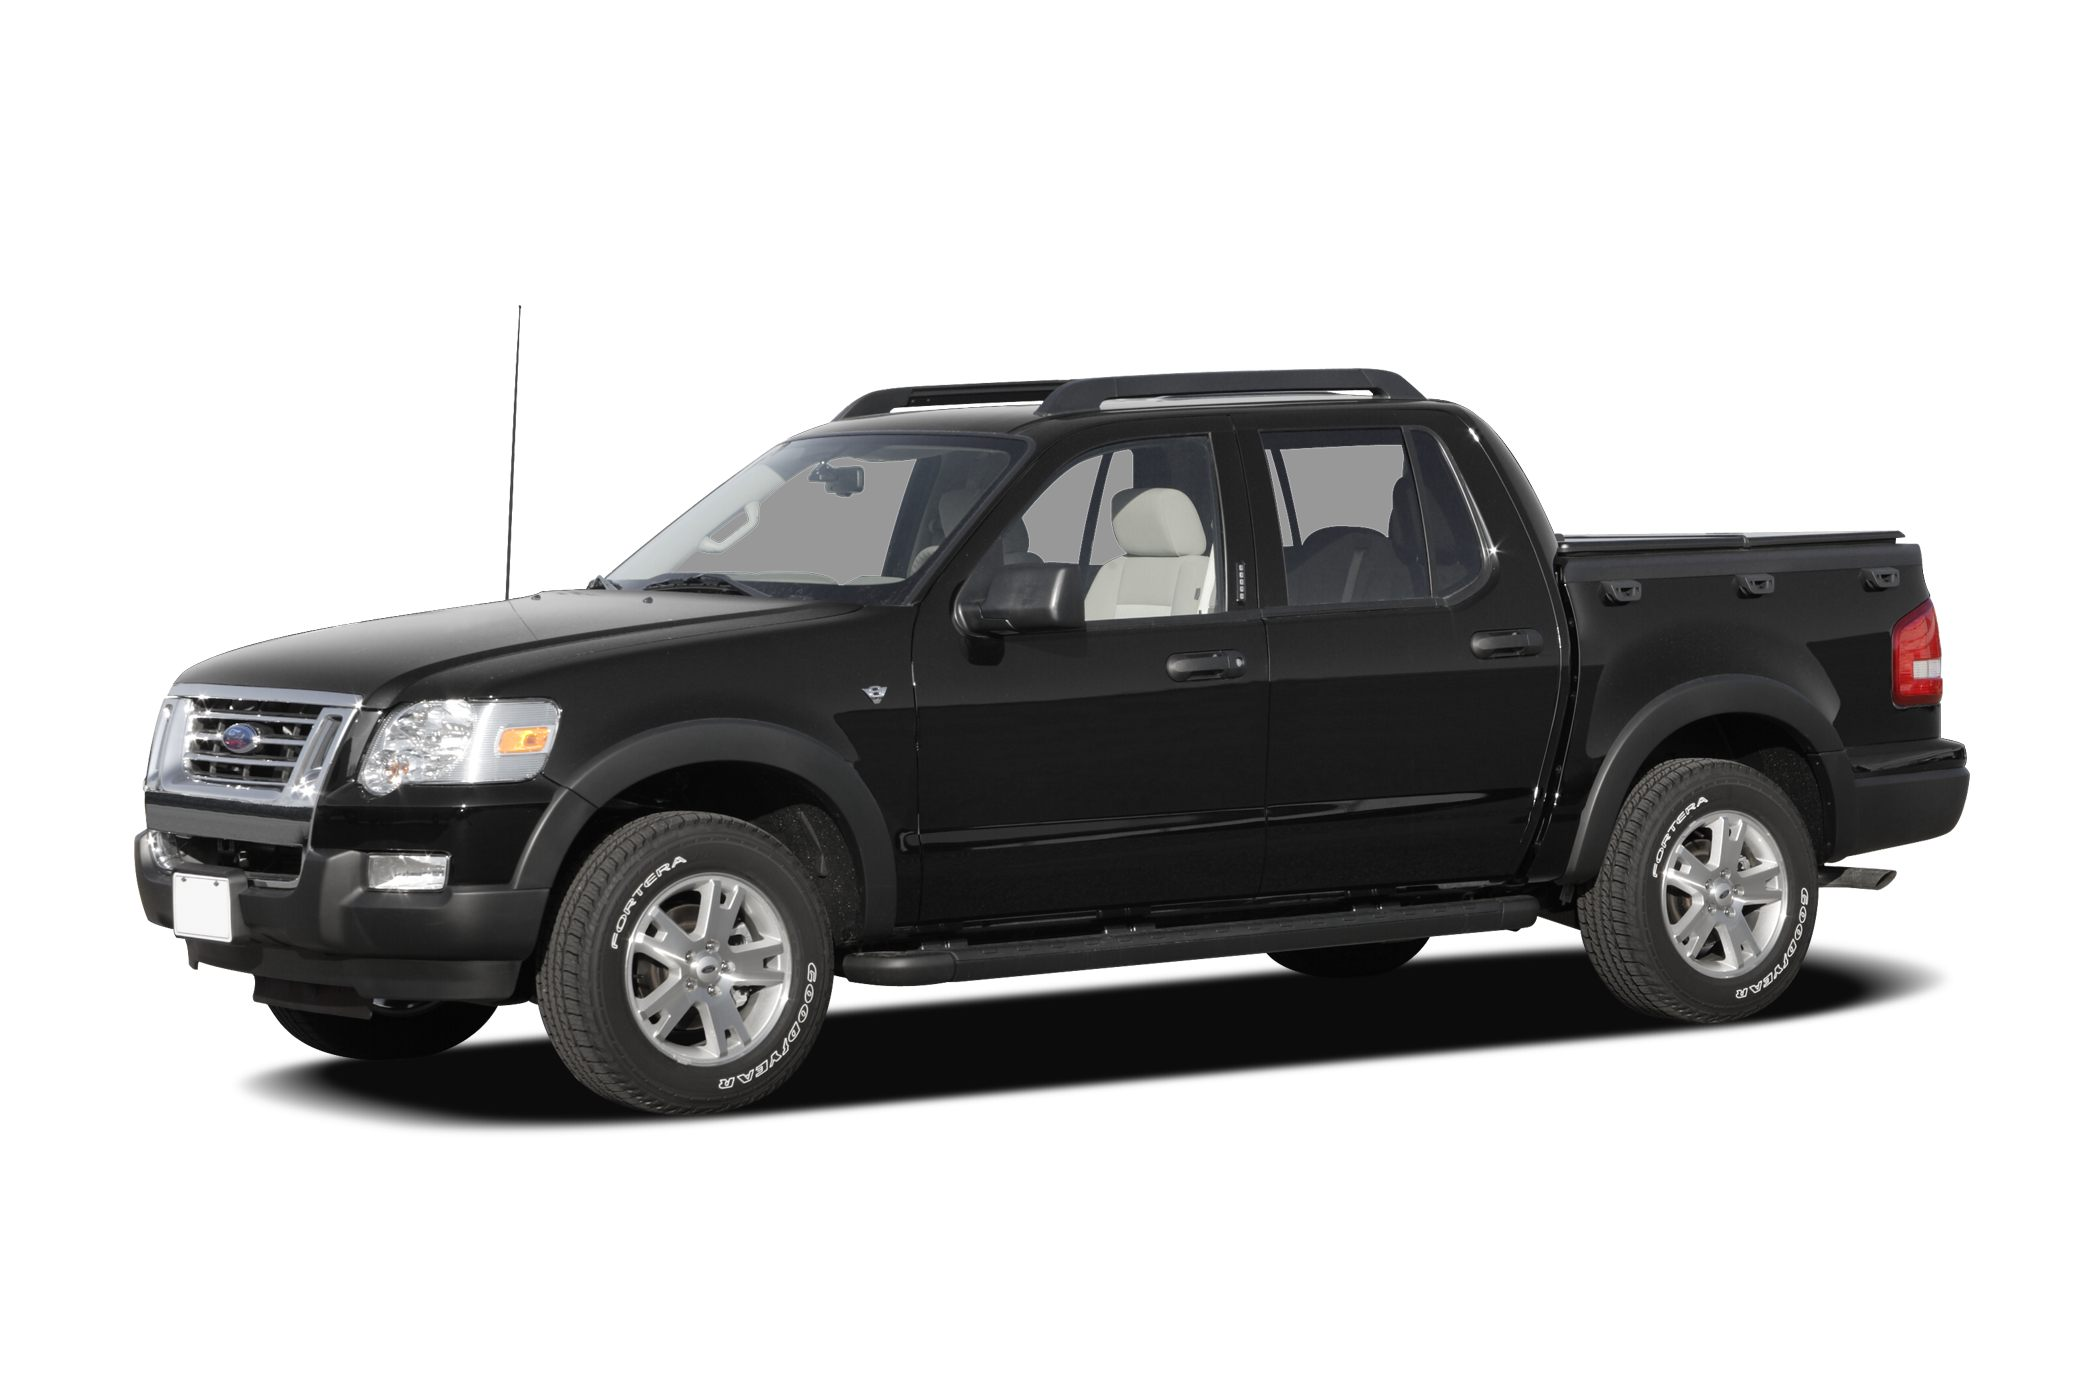 2007 Ford Explorer Sport Trac XLT Crew Cab Pickup for sale in Camdenton for $12,796 with 118,379 miles